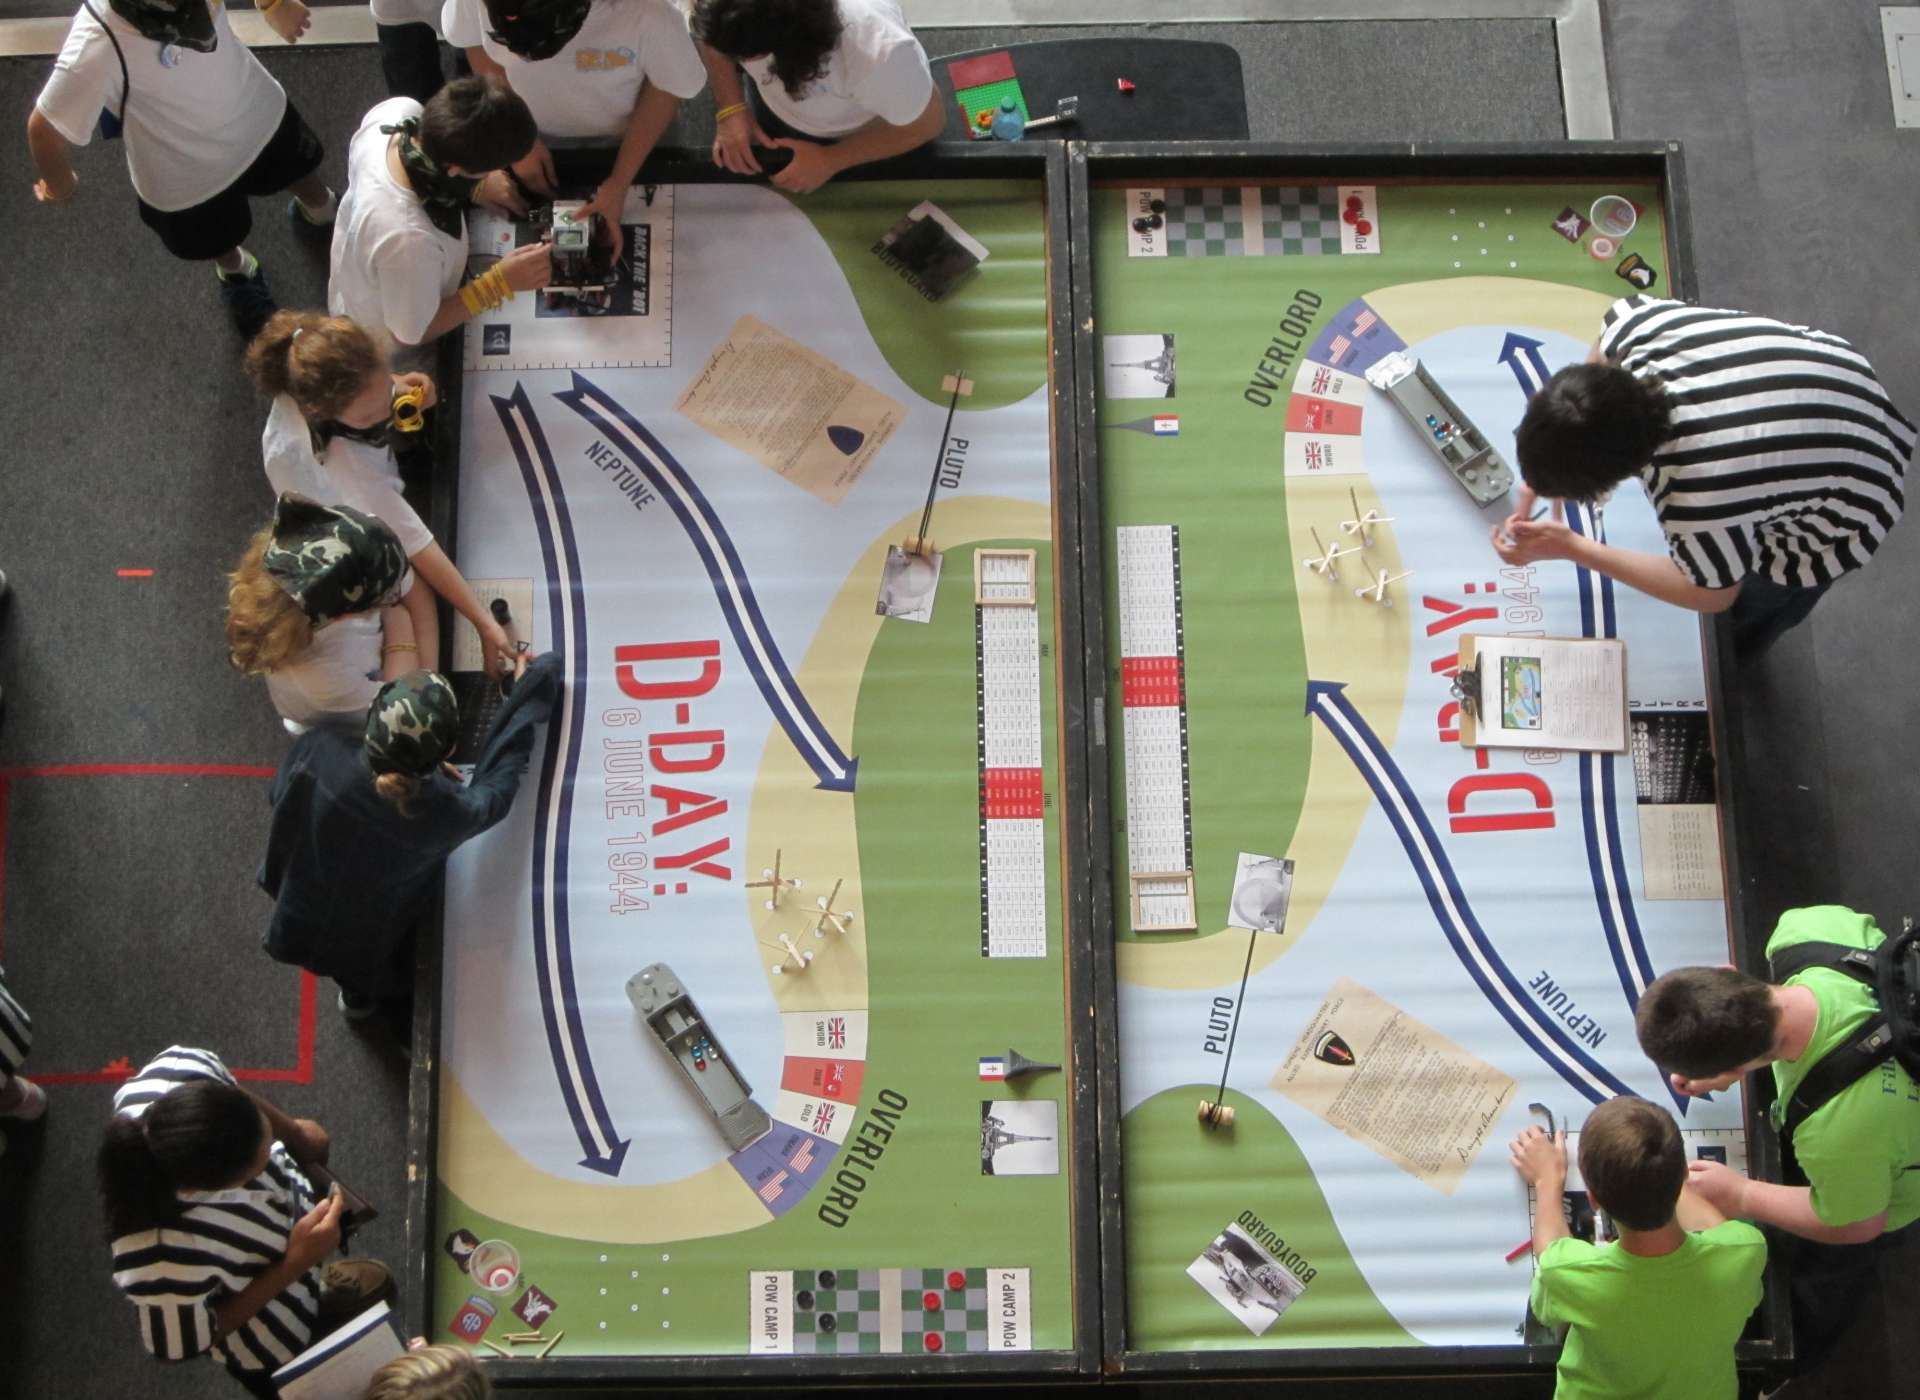 Aerial view of Robotics Challenge playing field